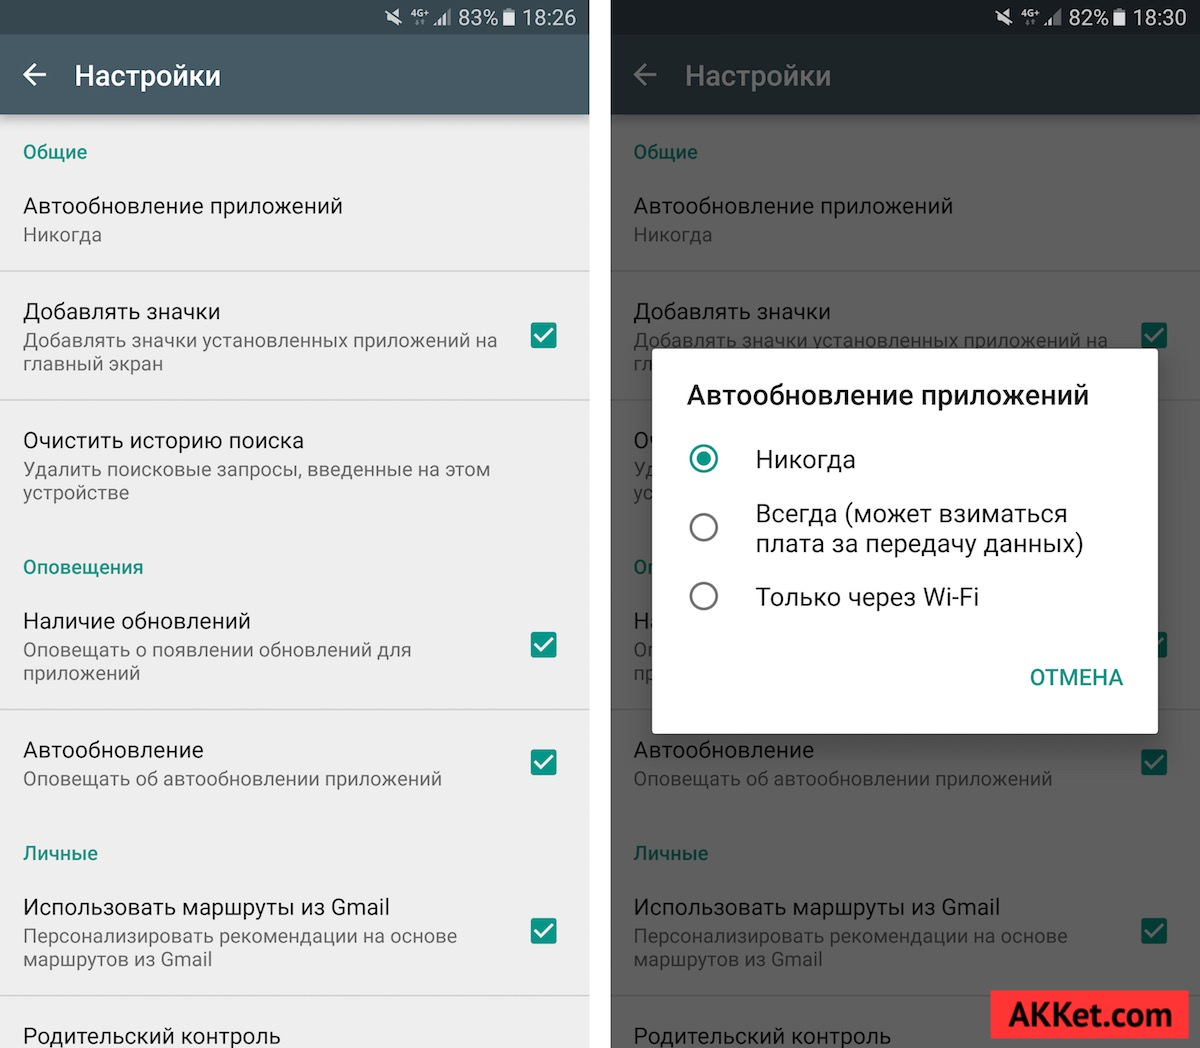 Autoupdate apps Android disable